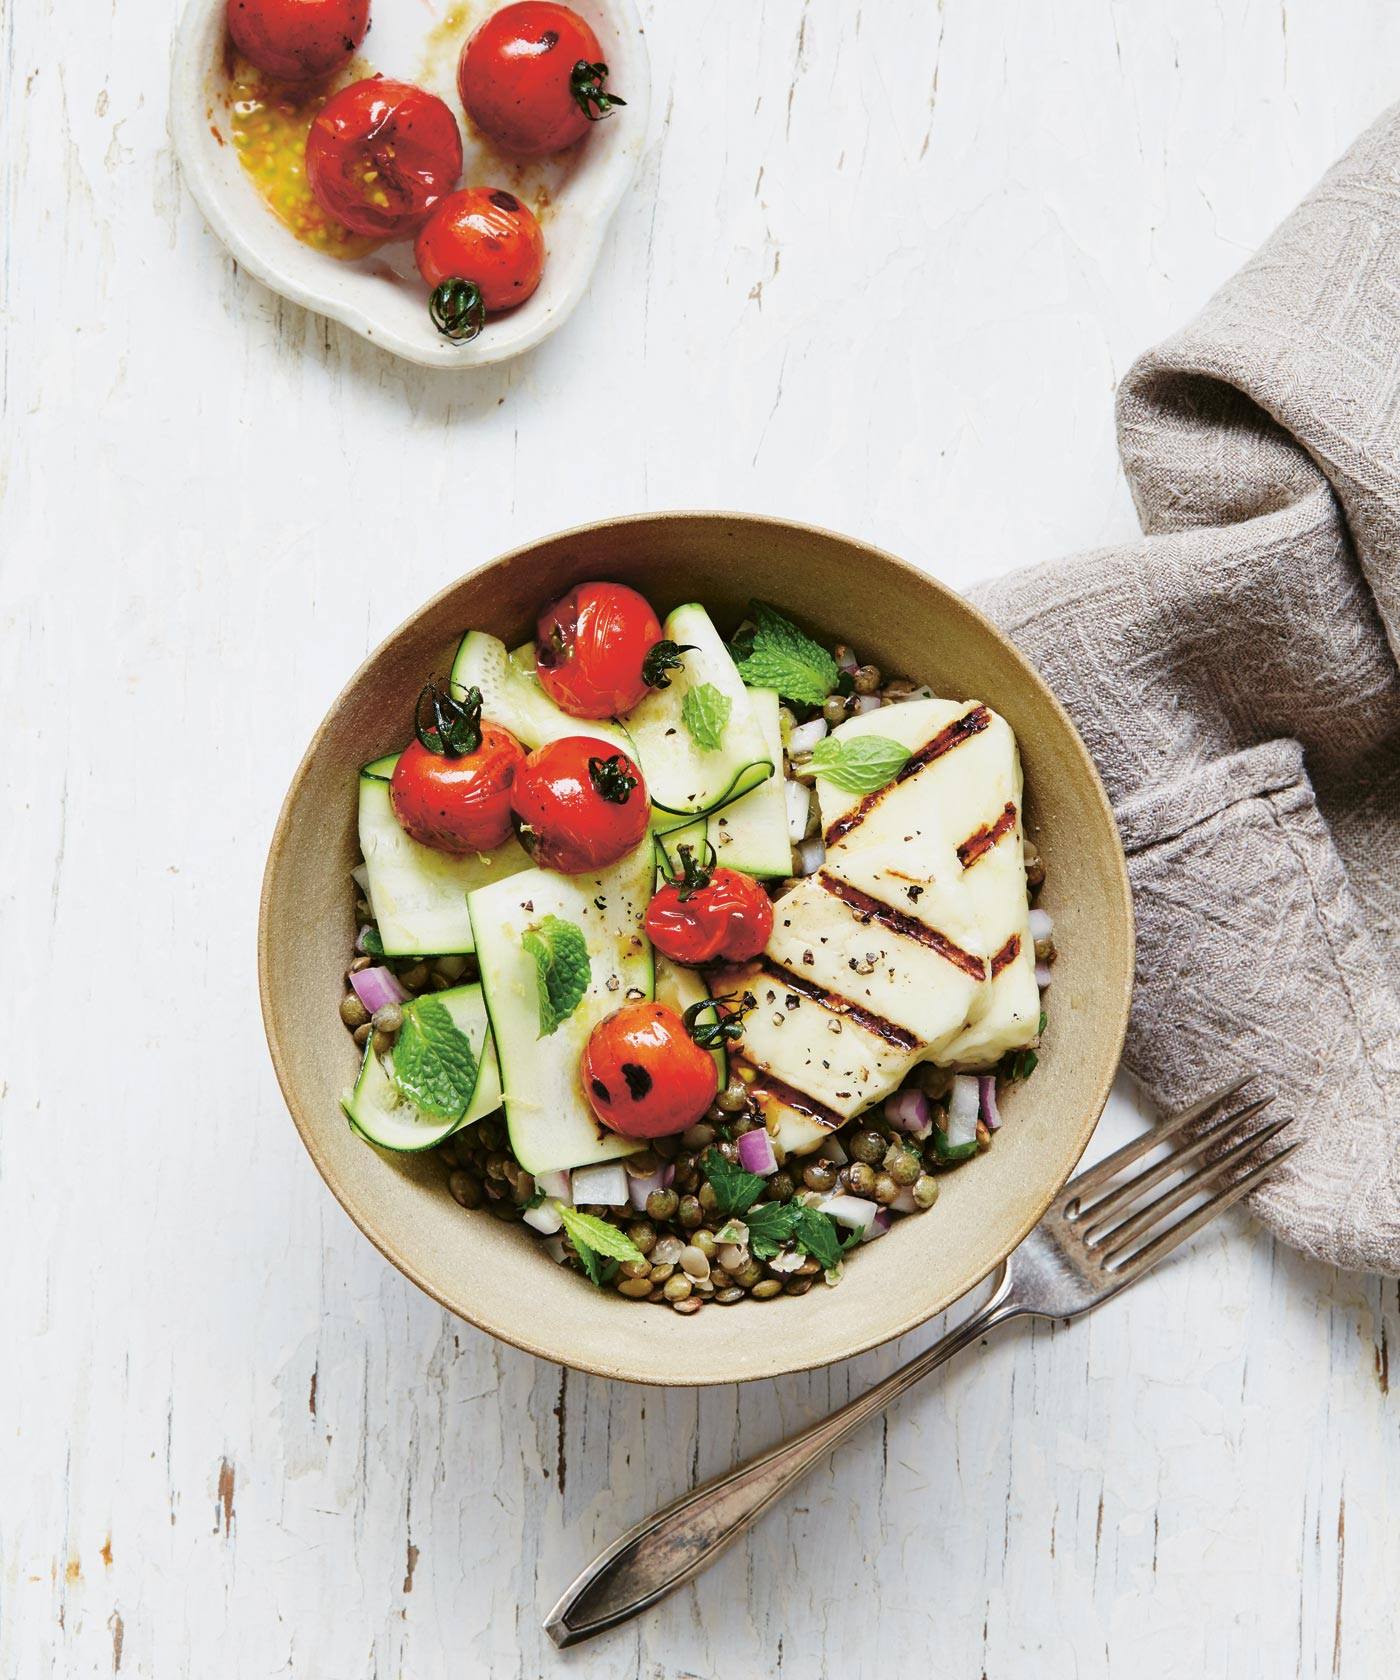 City Style and Living Magazine recipes halloumi bowl for summer